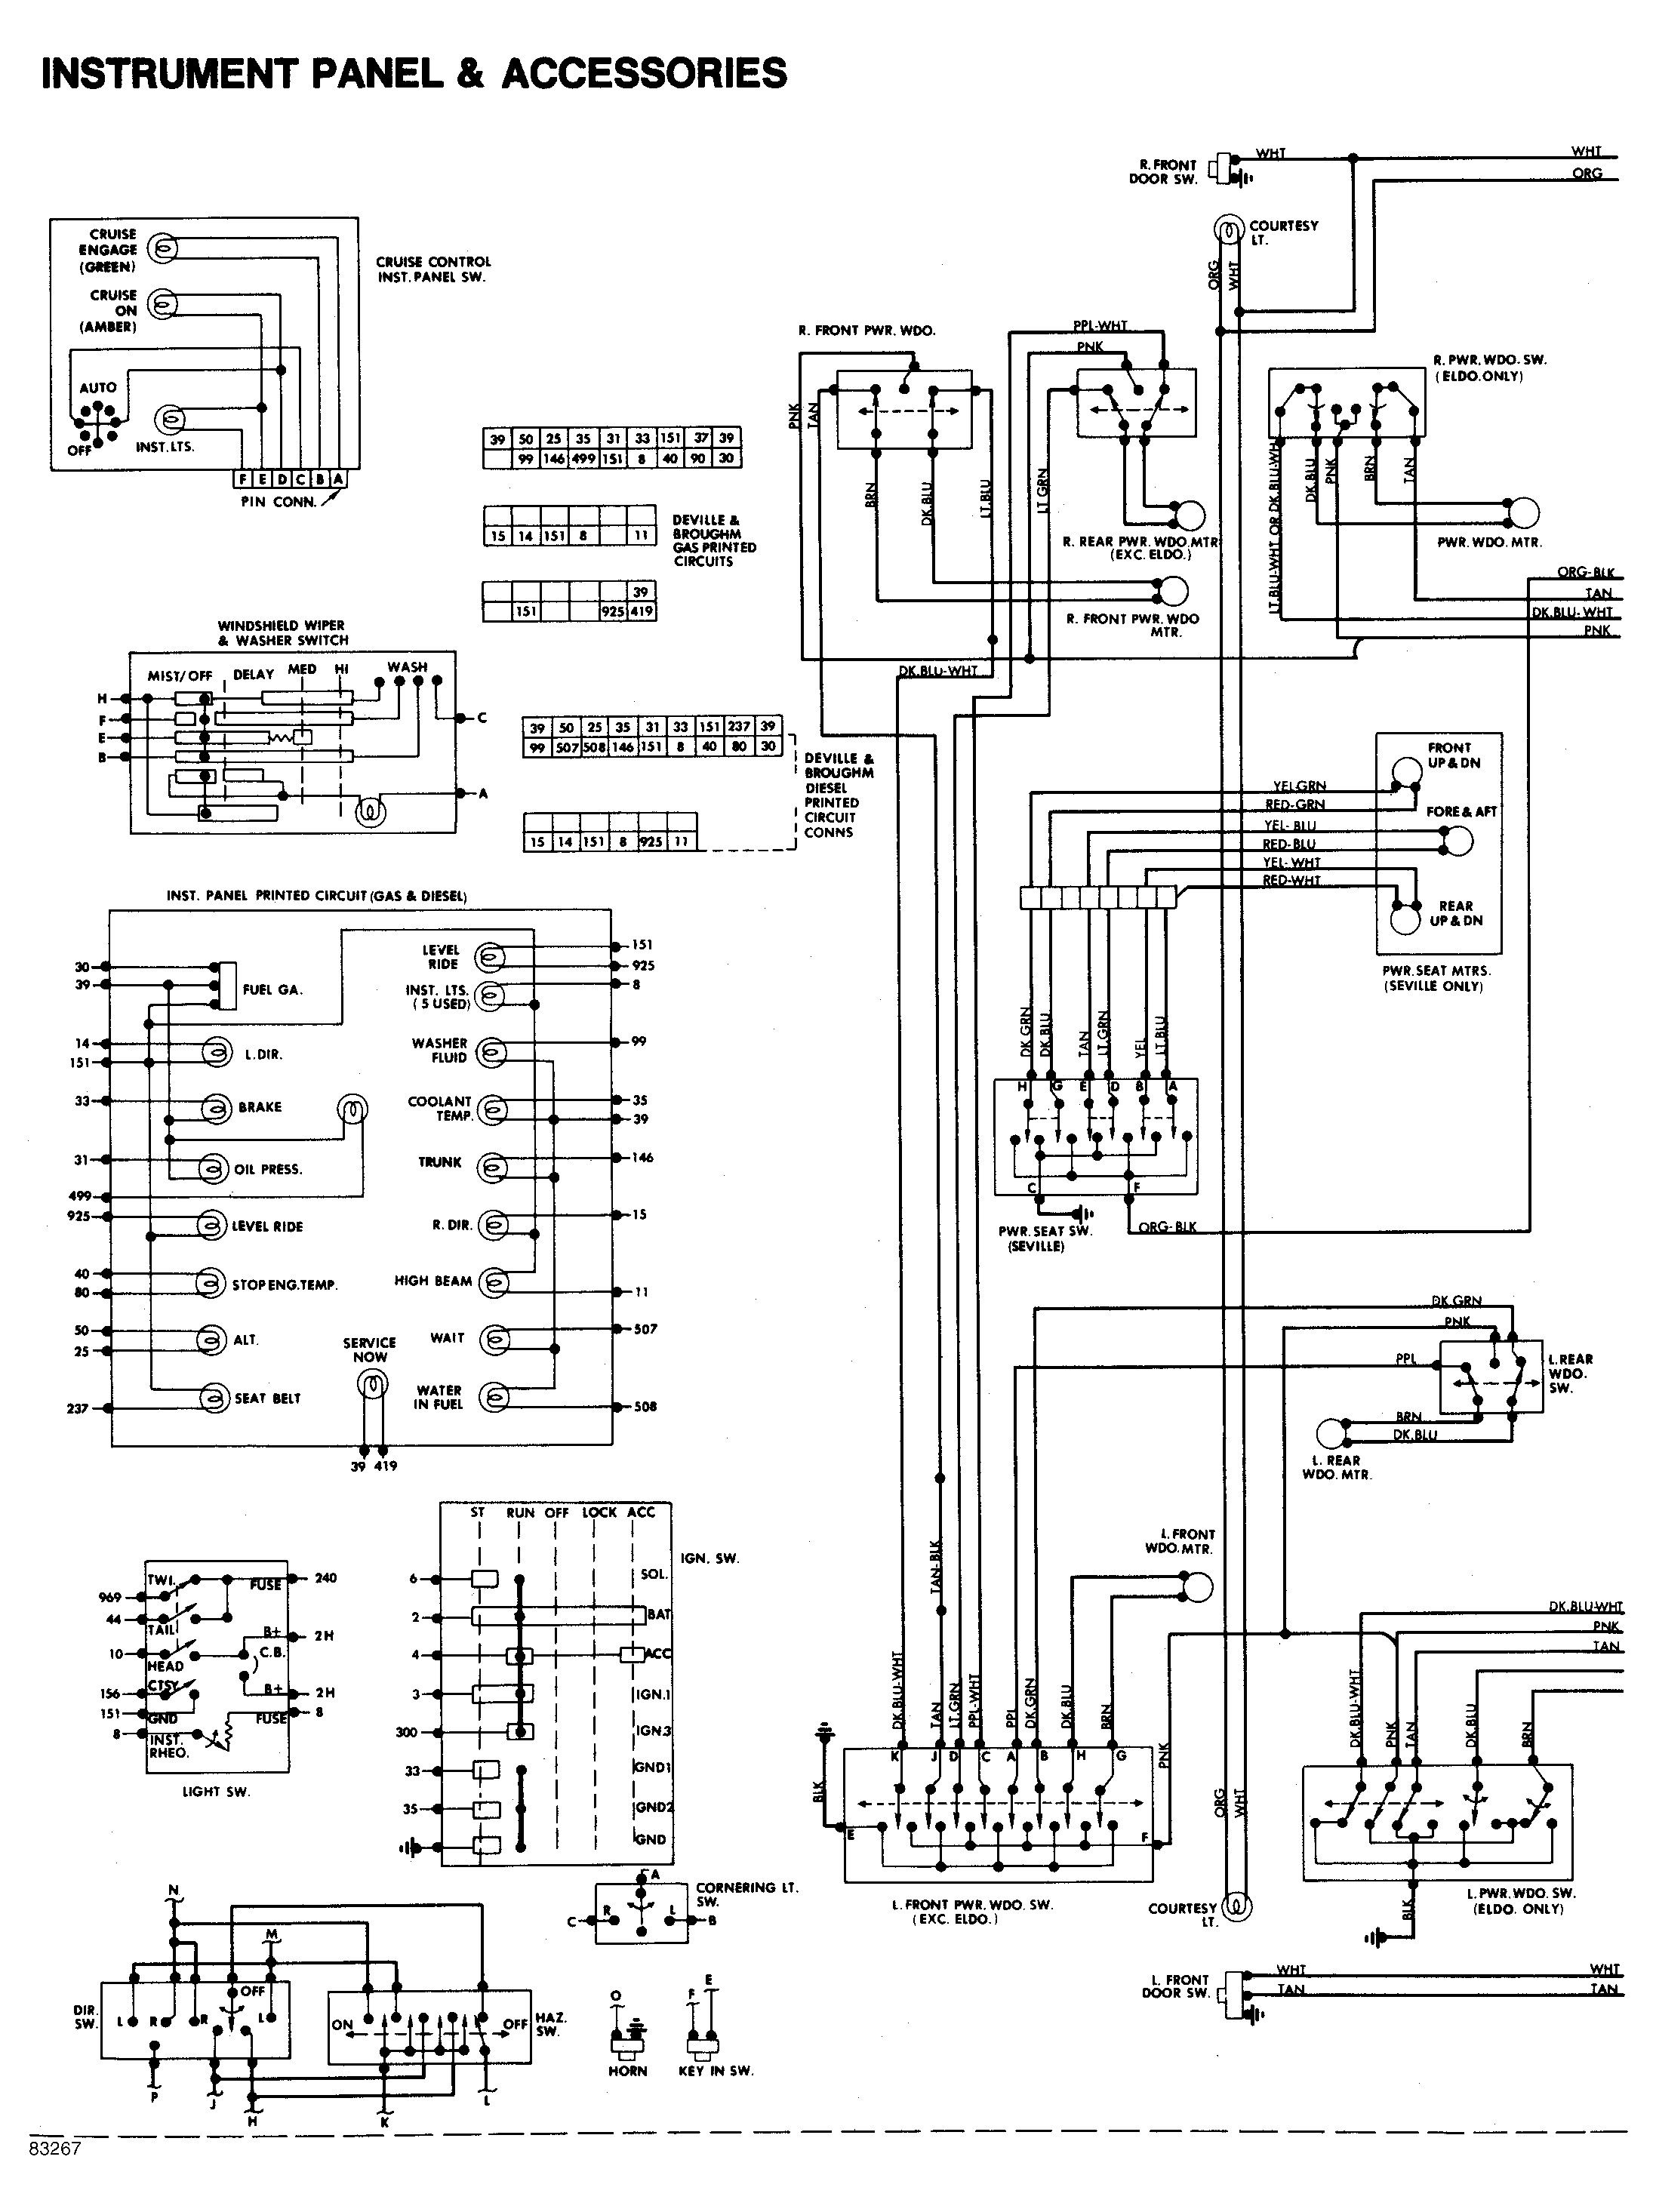 ih 544 wiring diagram